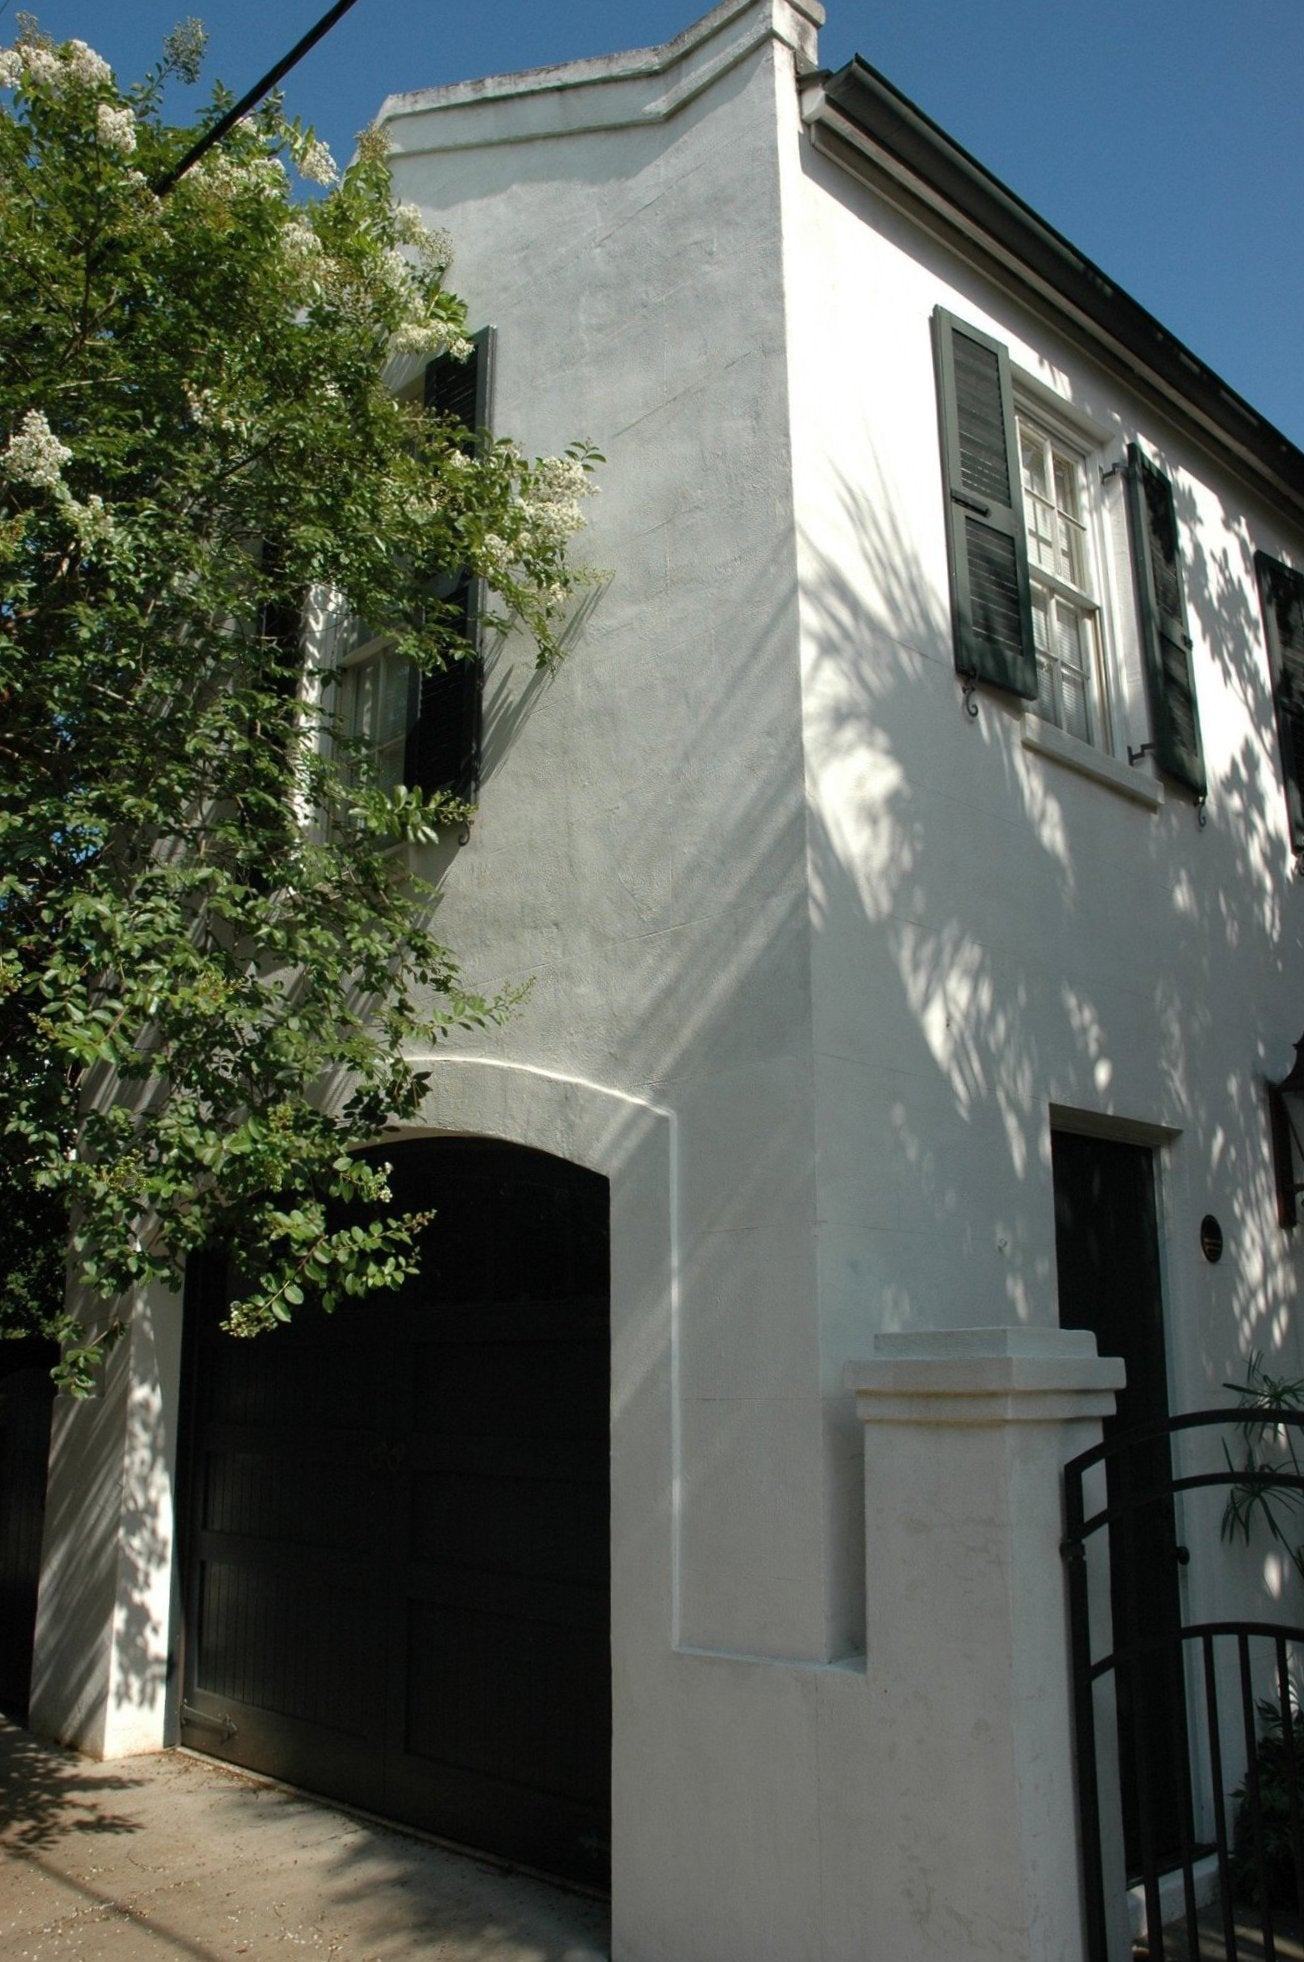 Limewash on stucco